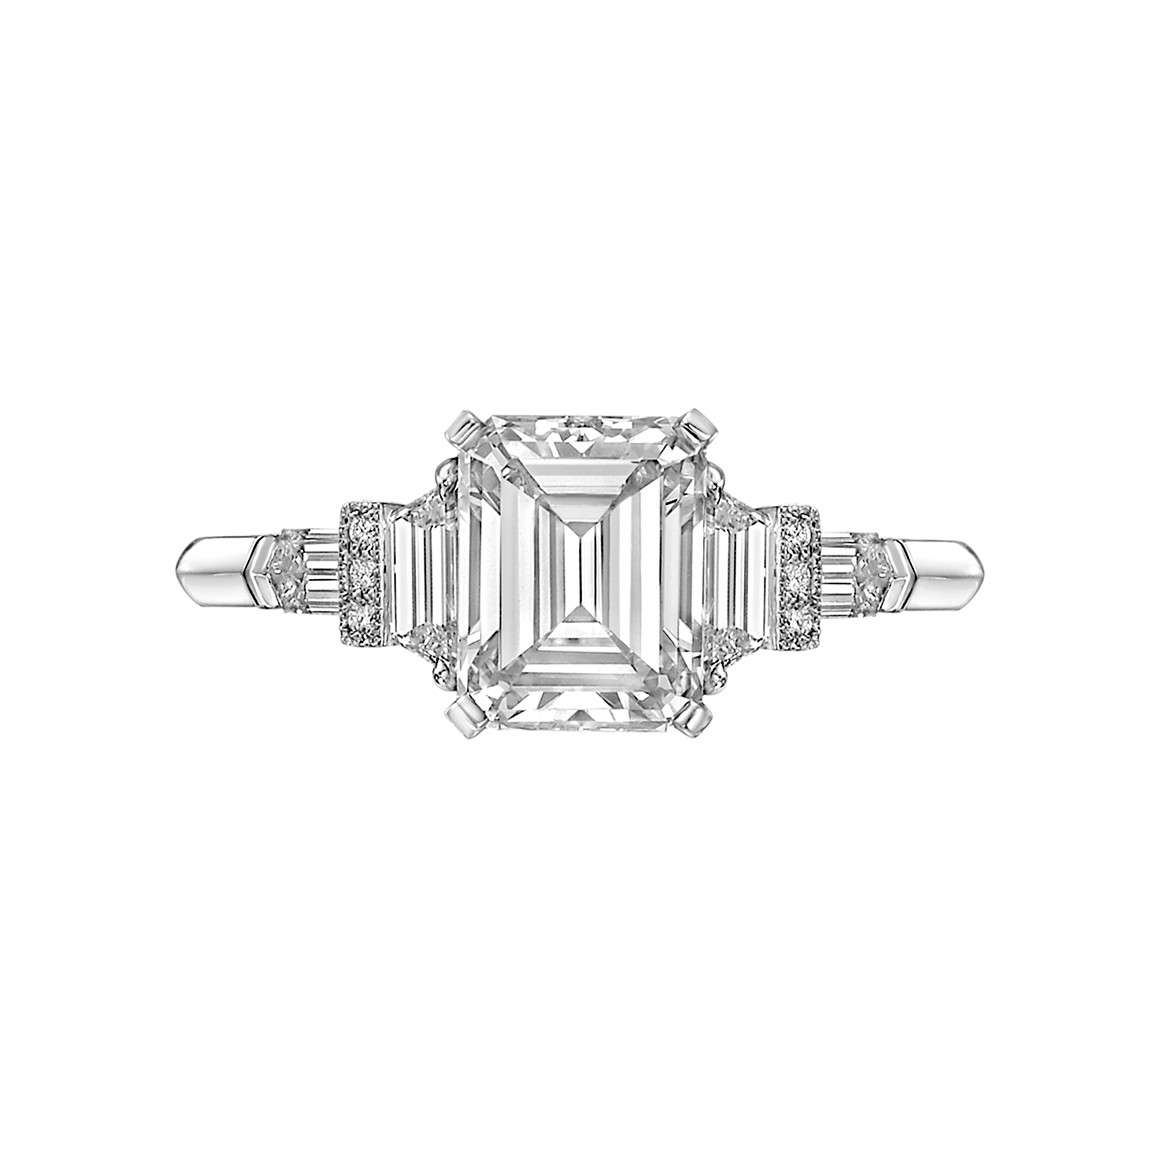 1.61 Carat Emerald-Cut Diamond Ring